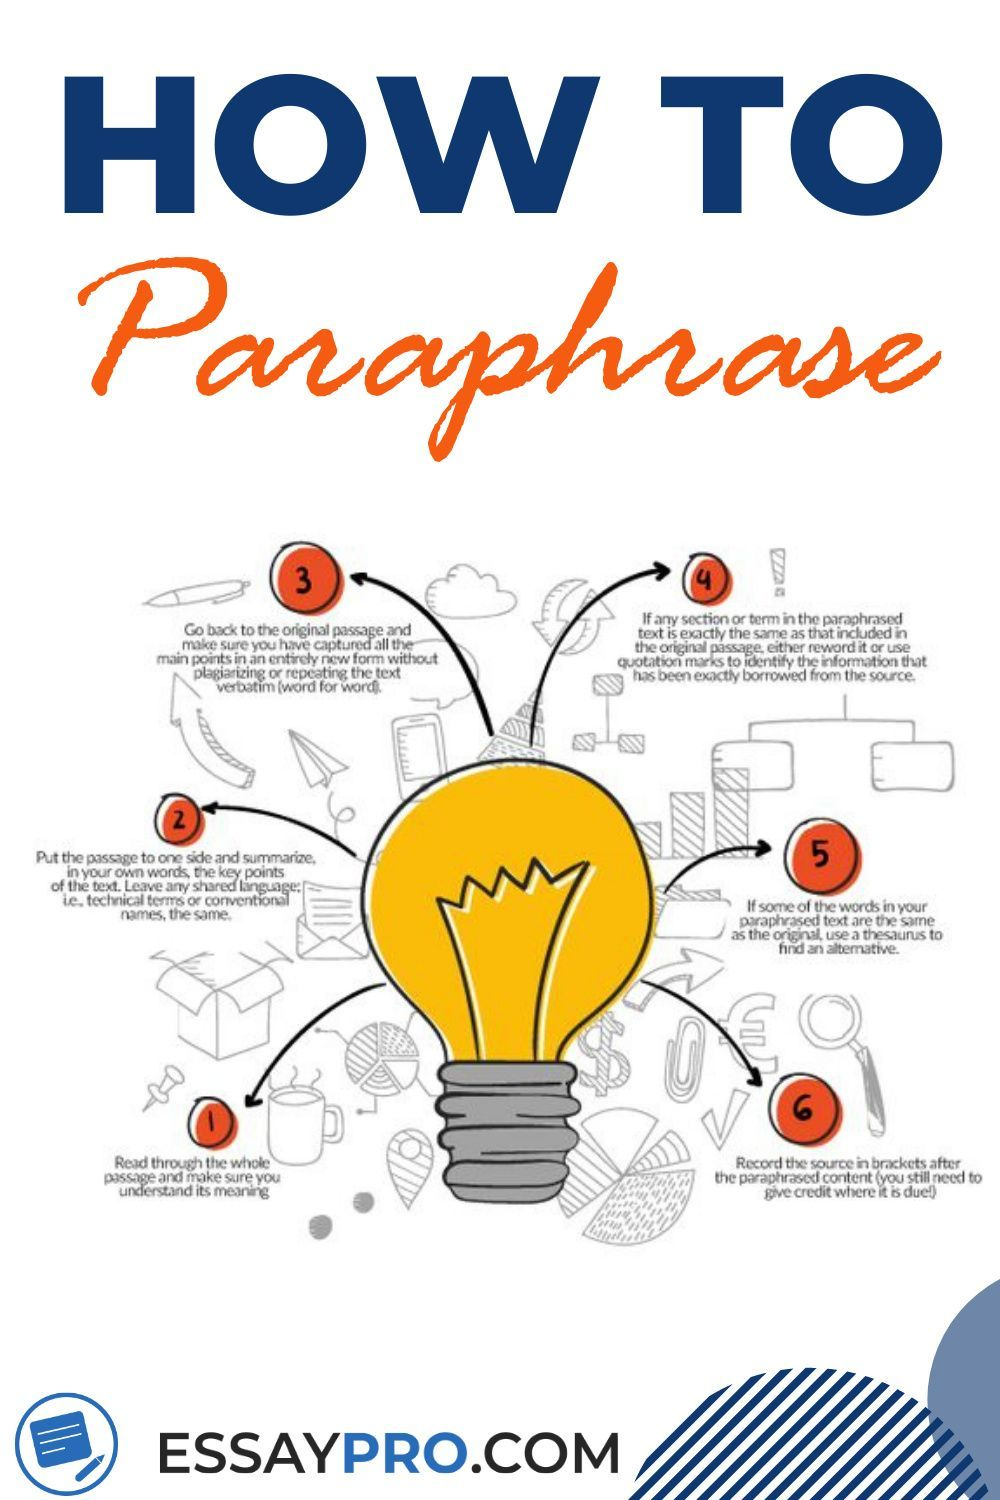 How To Paraphrase In An Essay Help Writing Best Service A Website Mla